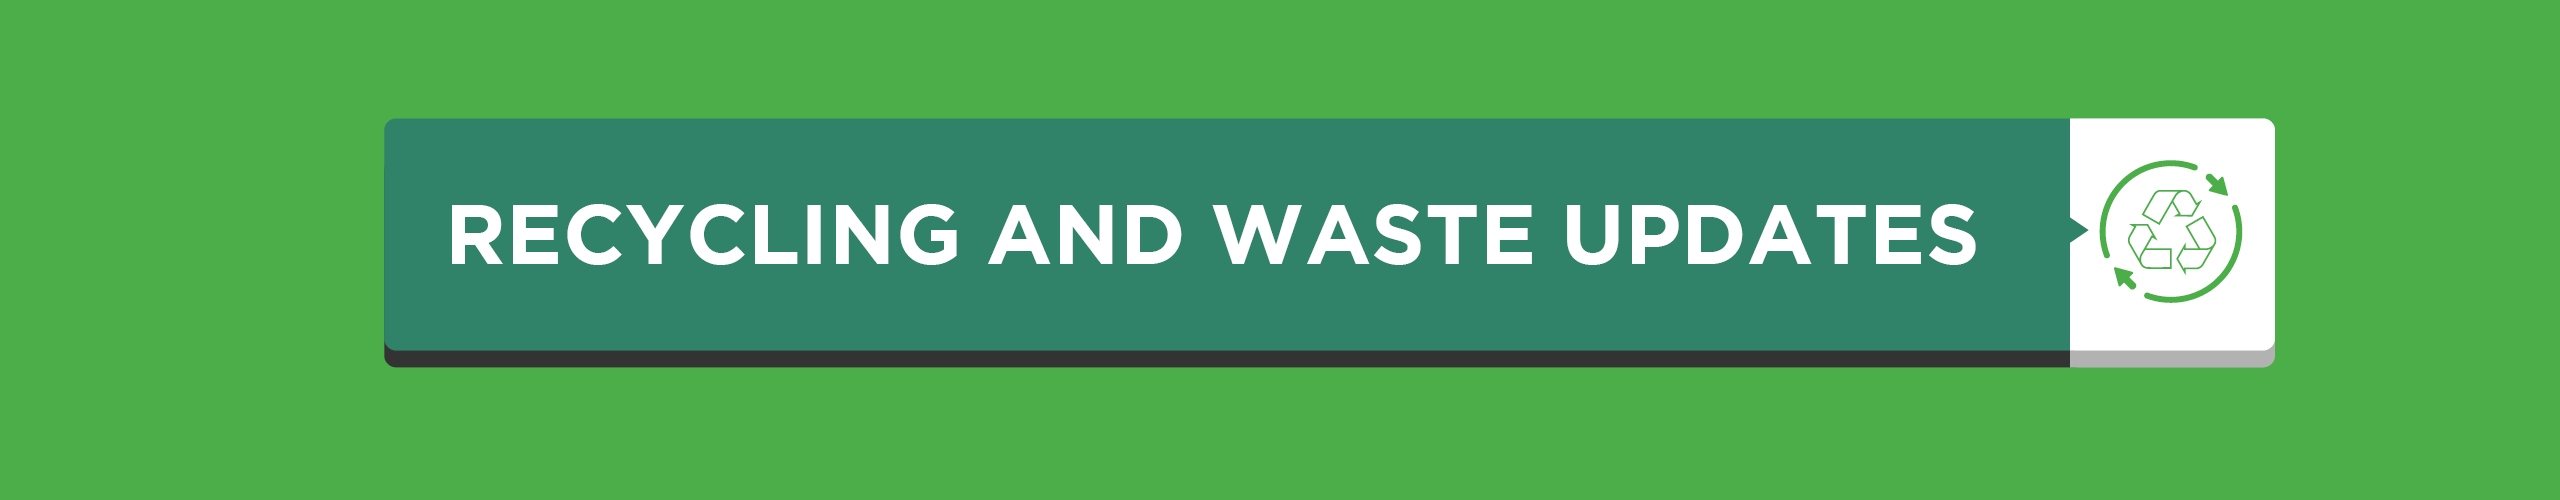 Recycling And Waste Covid Banner